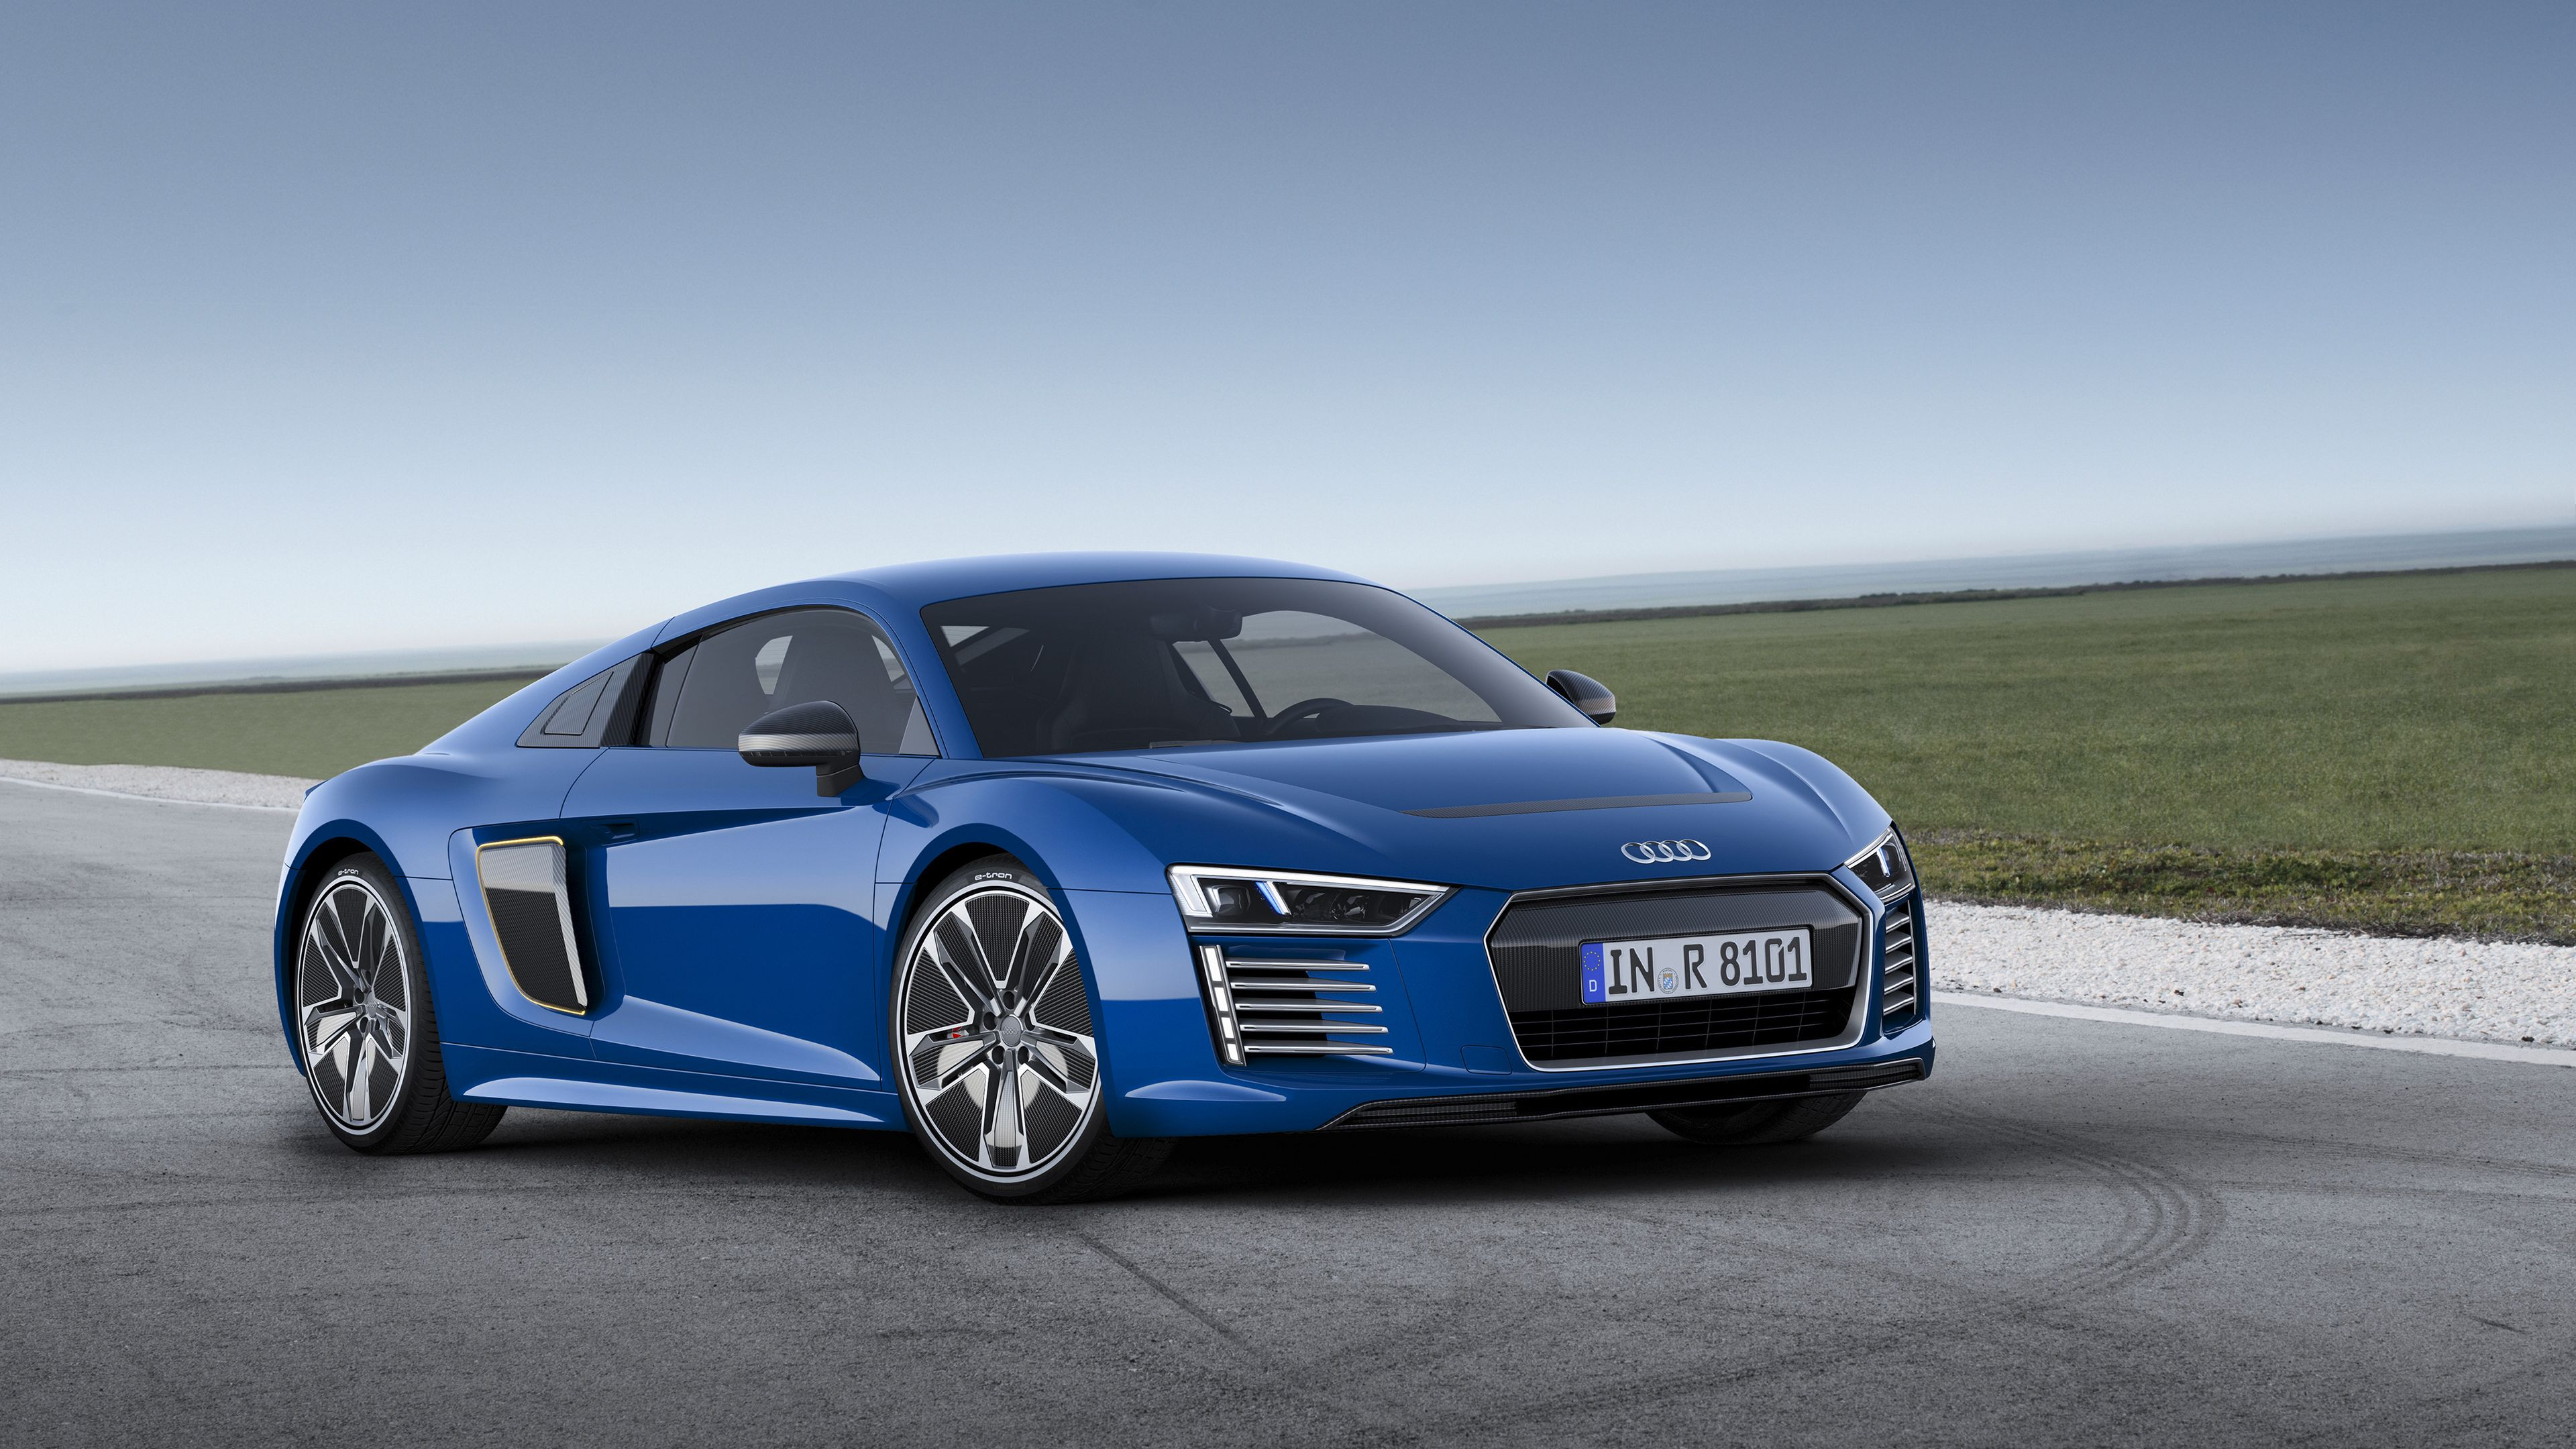 As Audi continues optimizing its spending strategy, the TT and R8 are the first two models that may have to go. It remains open whether the manufacturer wants to discontinue either of them permanently or just put out of production for a while and then bring back as an EV.